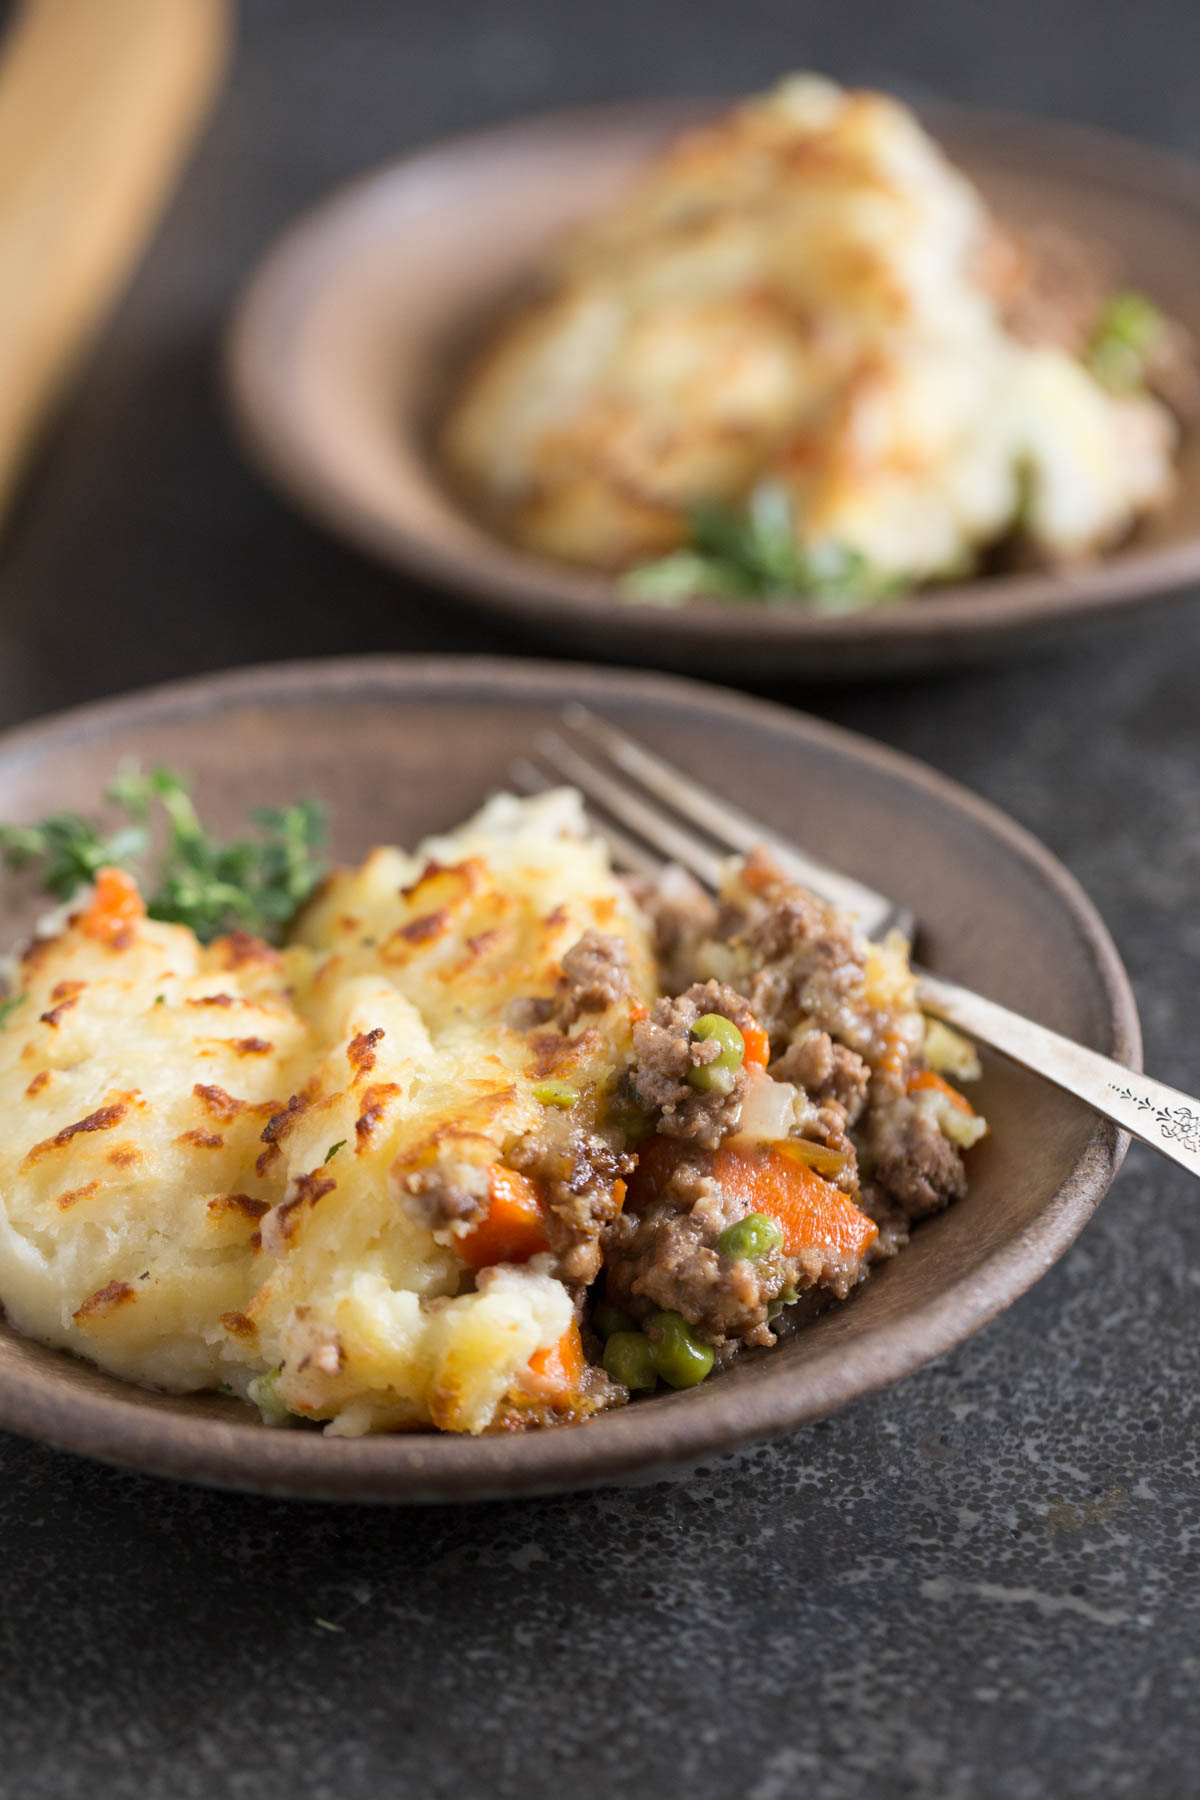 Easy Homemade Shepherd's Pie on a plate with a fork, with another serving of Easy Homemade Shepherd's Pie on a plate in the background.